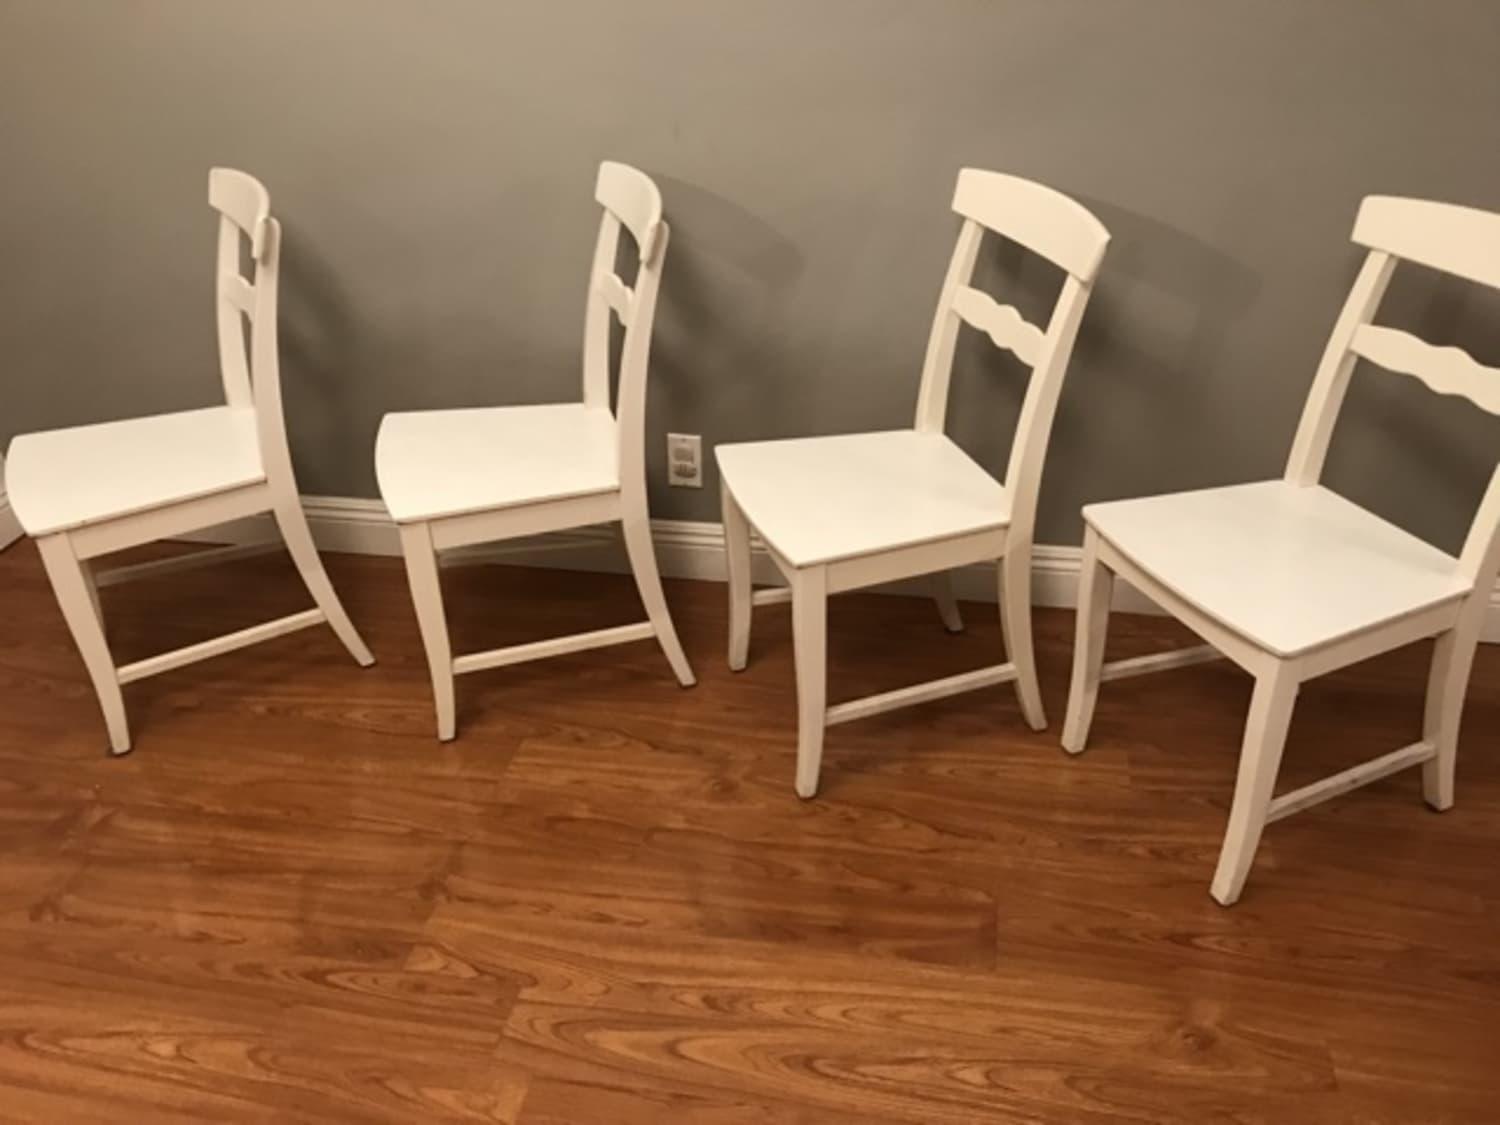 Bazaar Chairs Set Lanni Ikea Therapy's Apartment of 4 White Ygbv7fy6